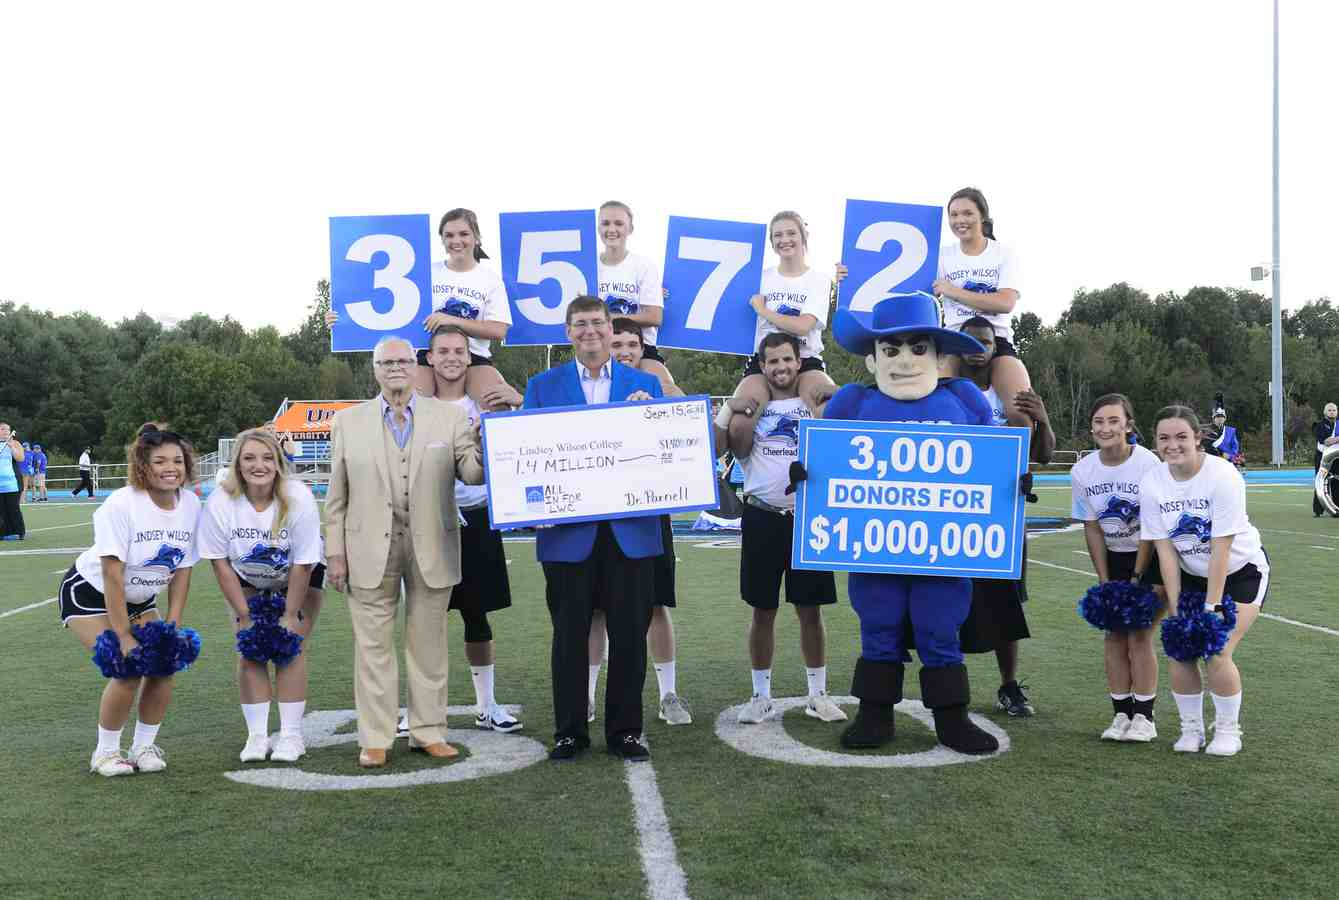 Adair County Native Allan Parnell Sets $1,000,000 Challenge to Benefit LWC Students